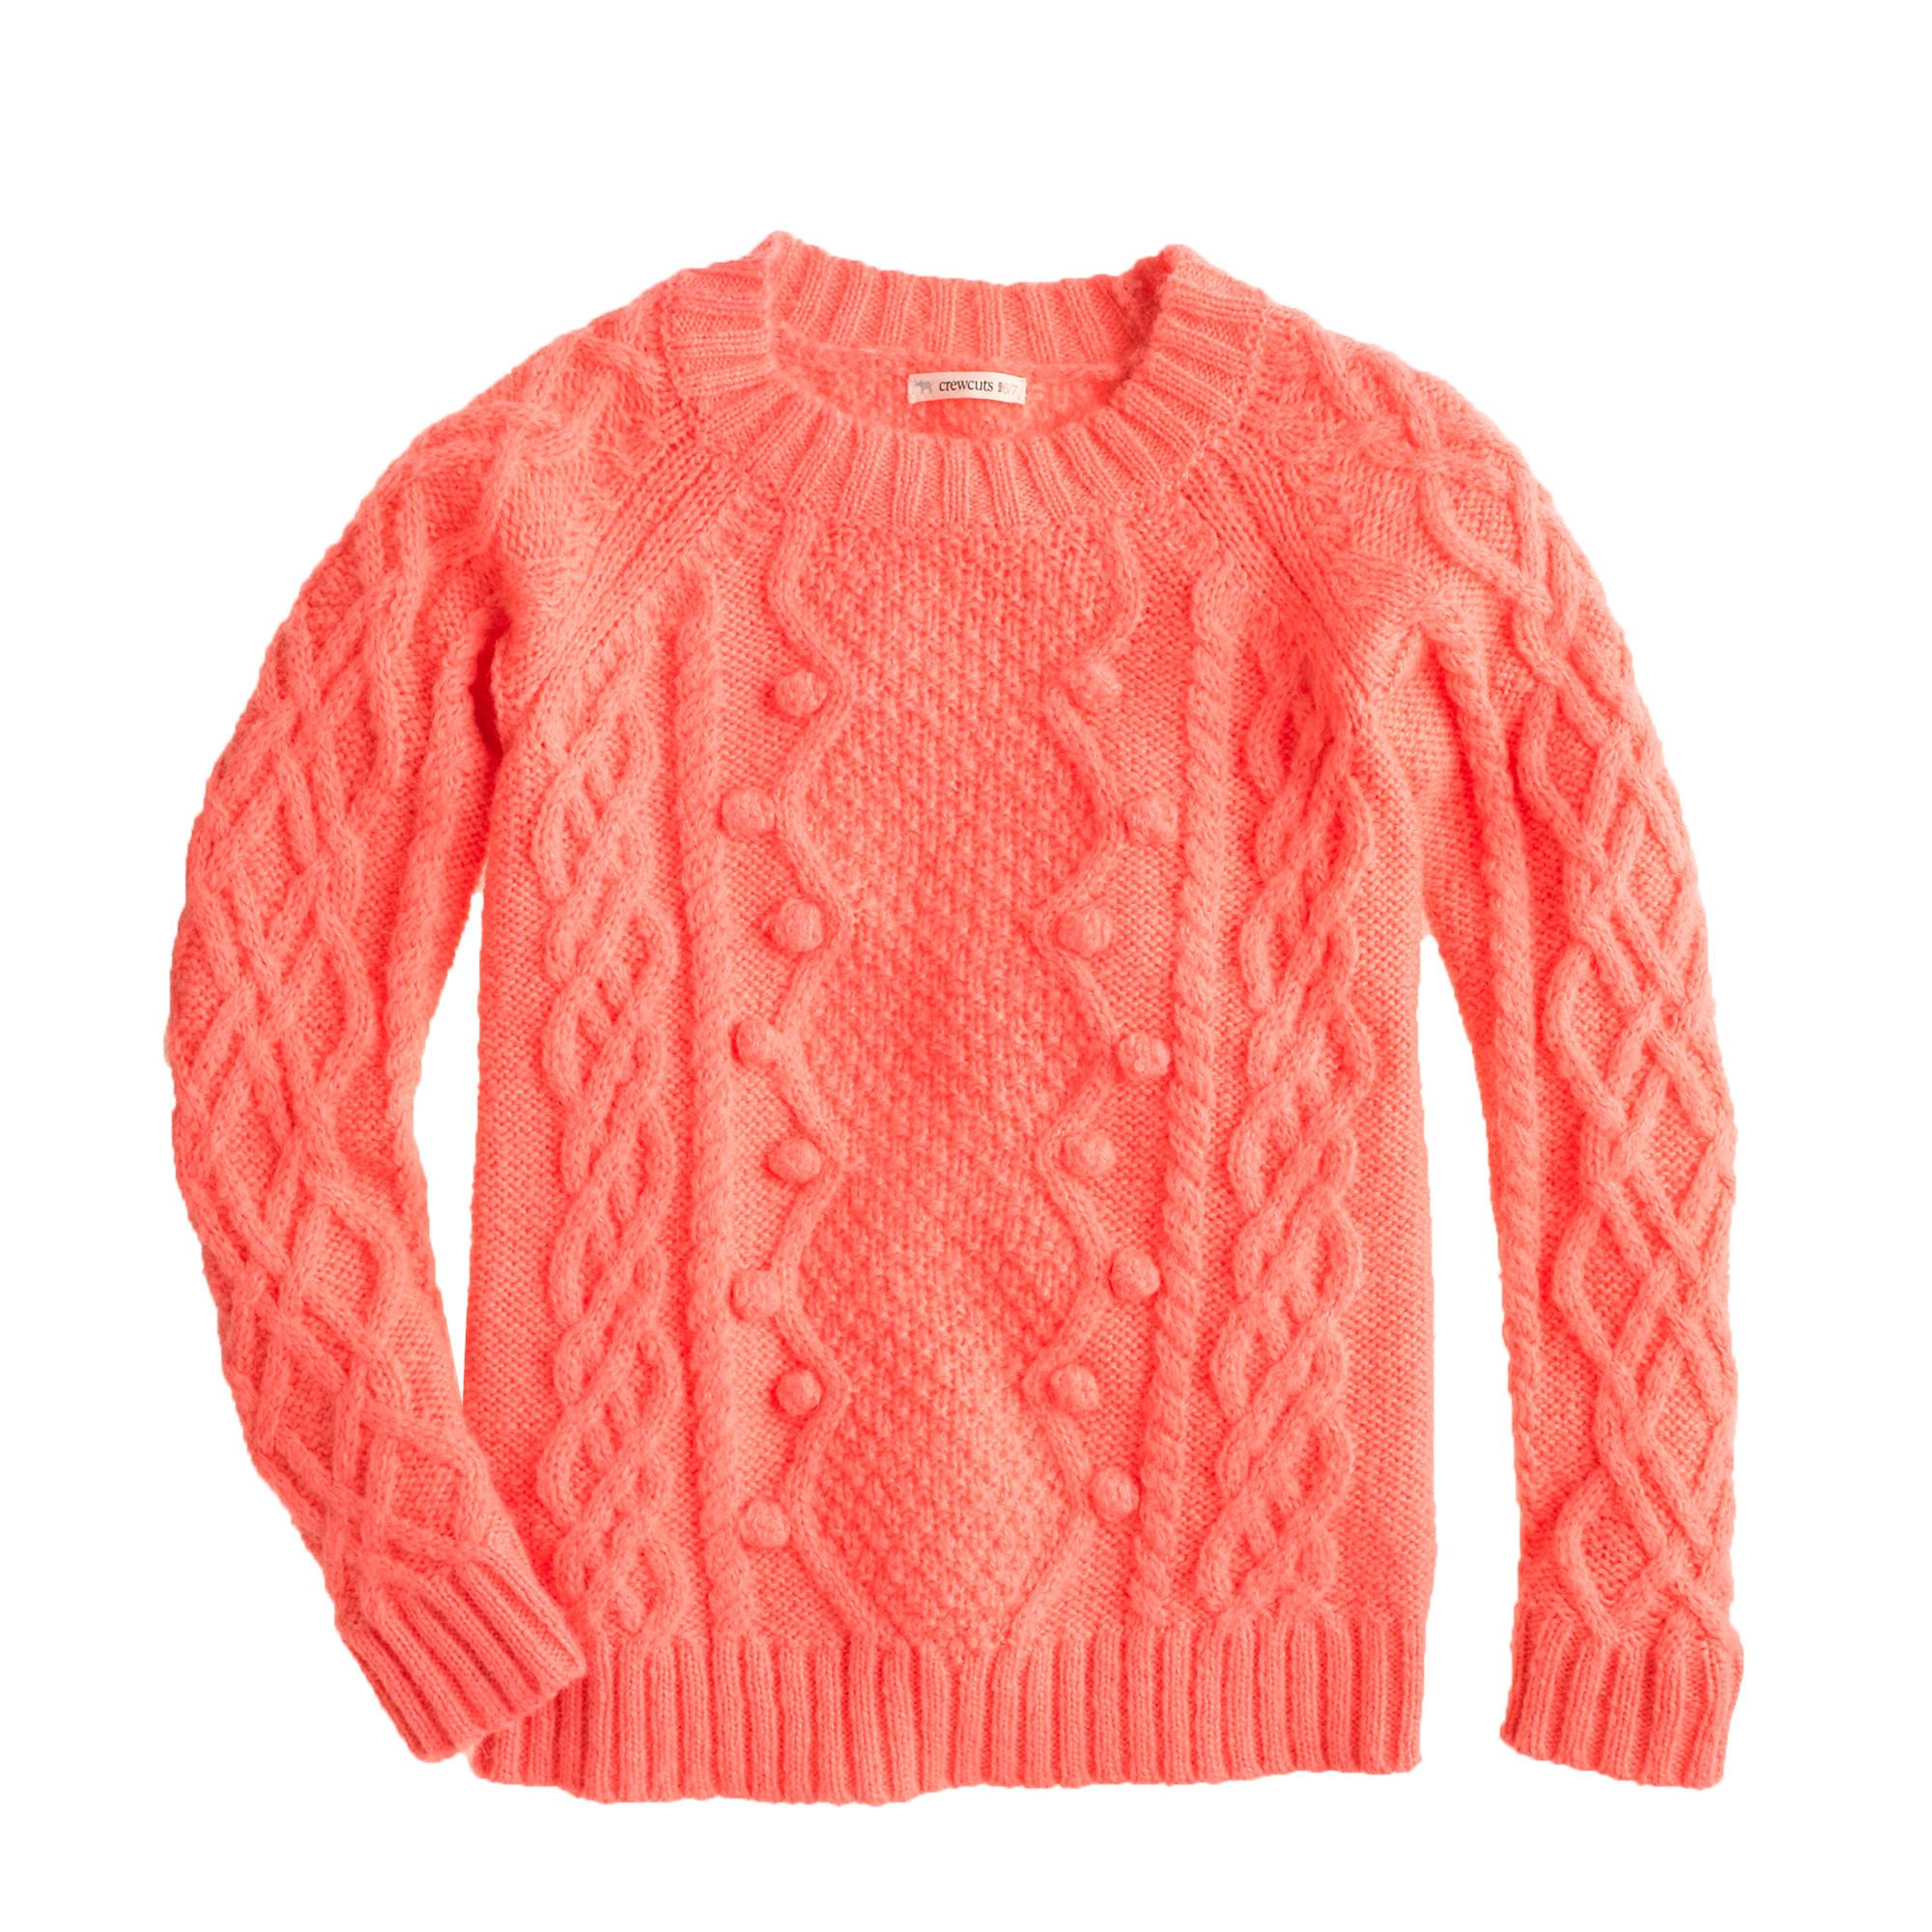 Girls' pom-pom cable sweater :